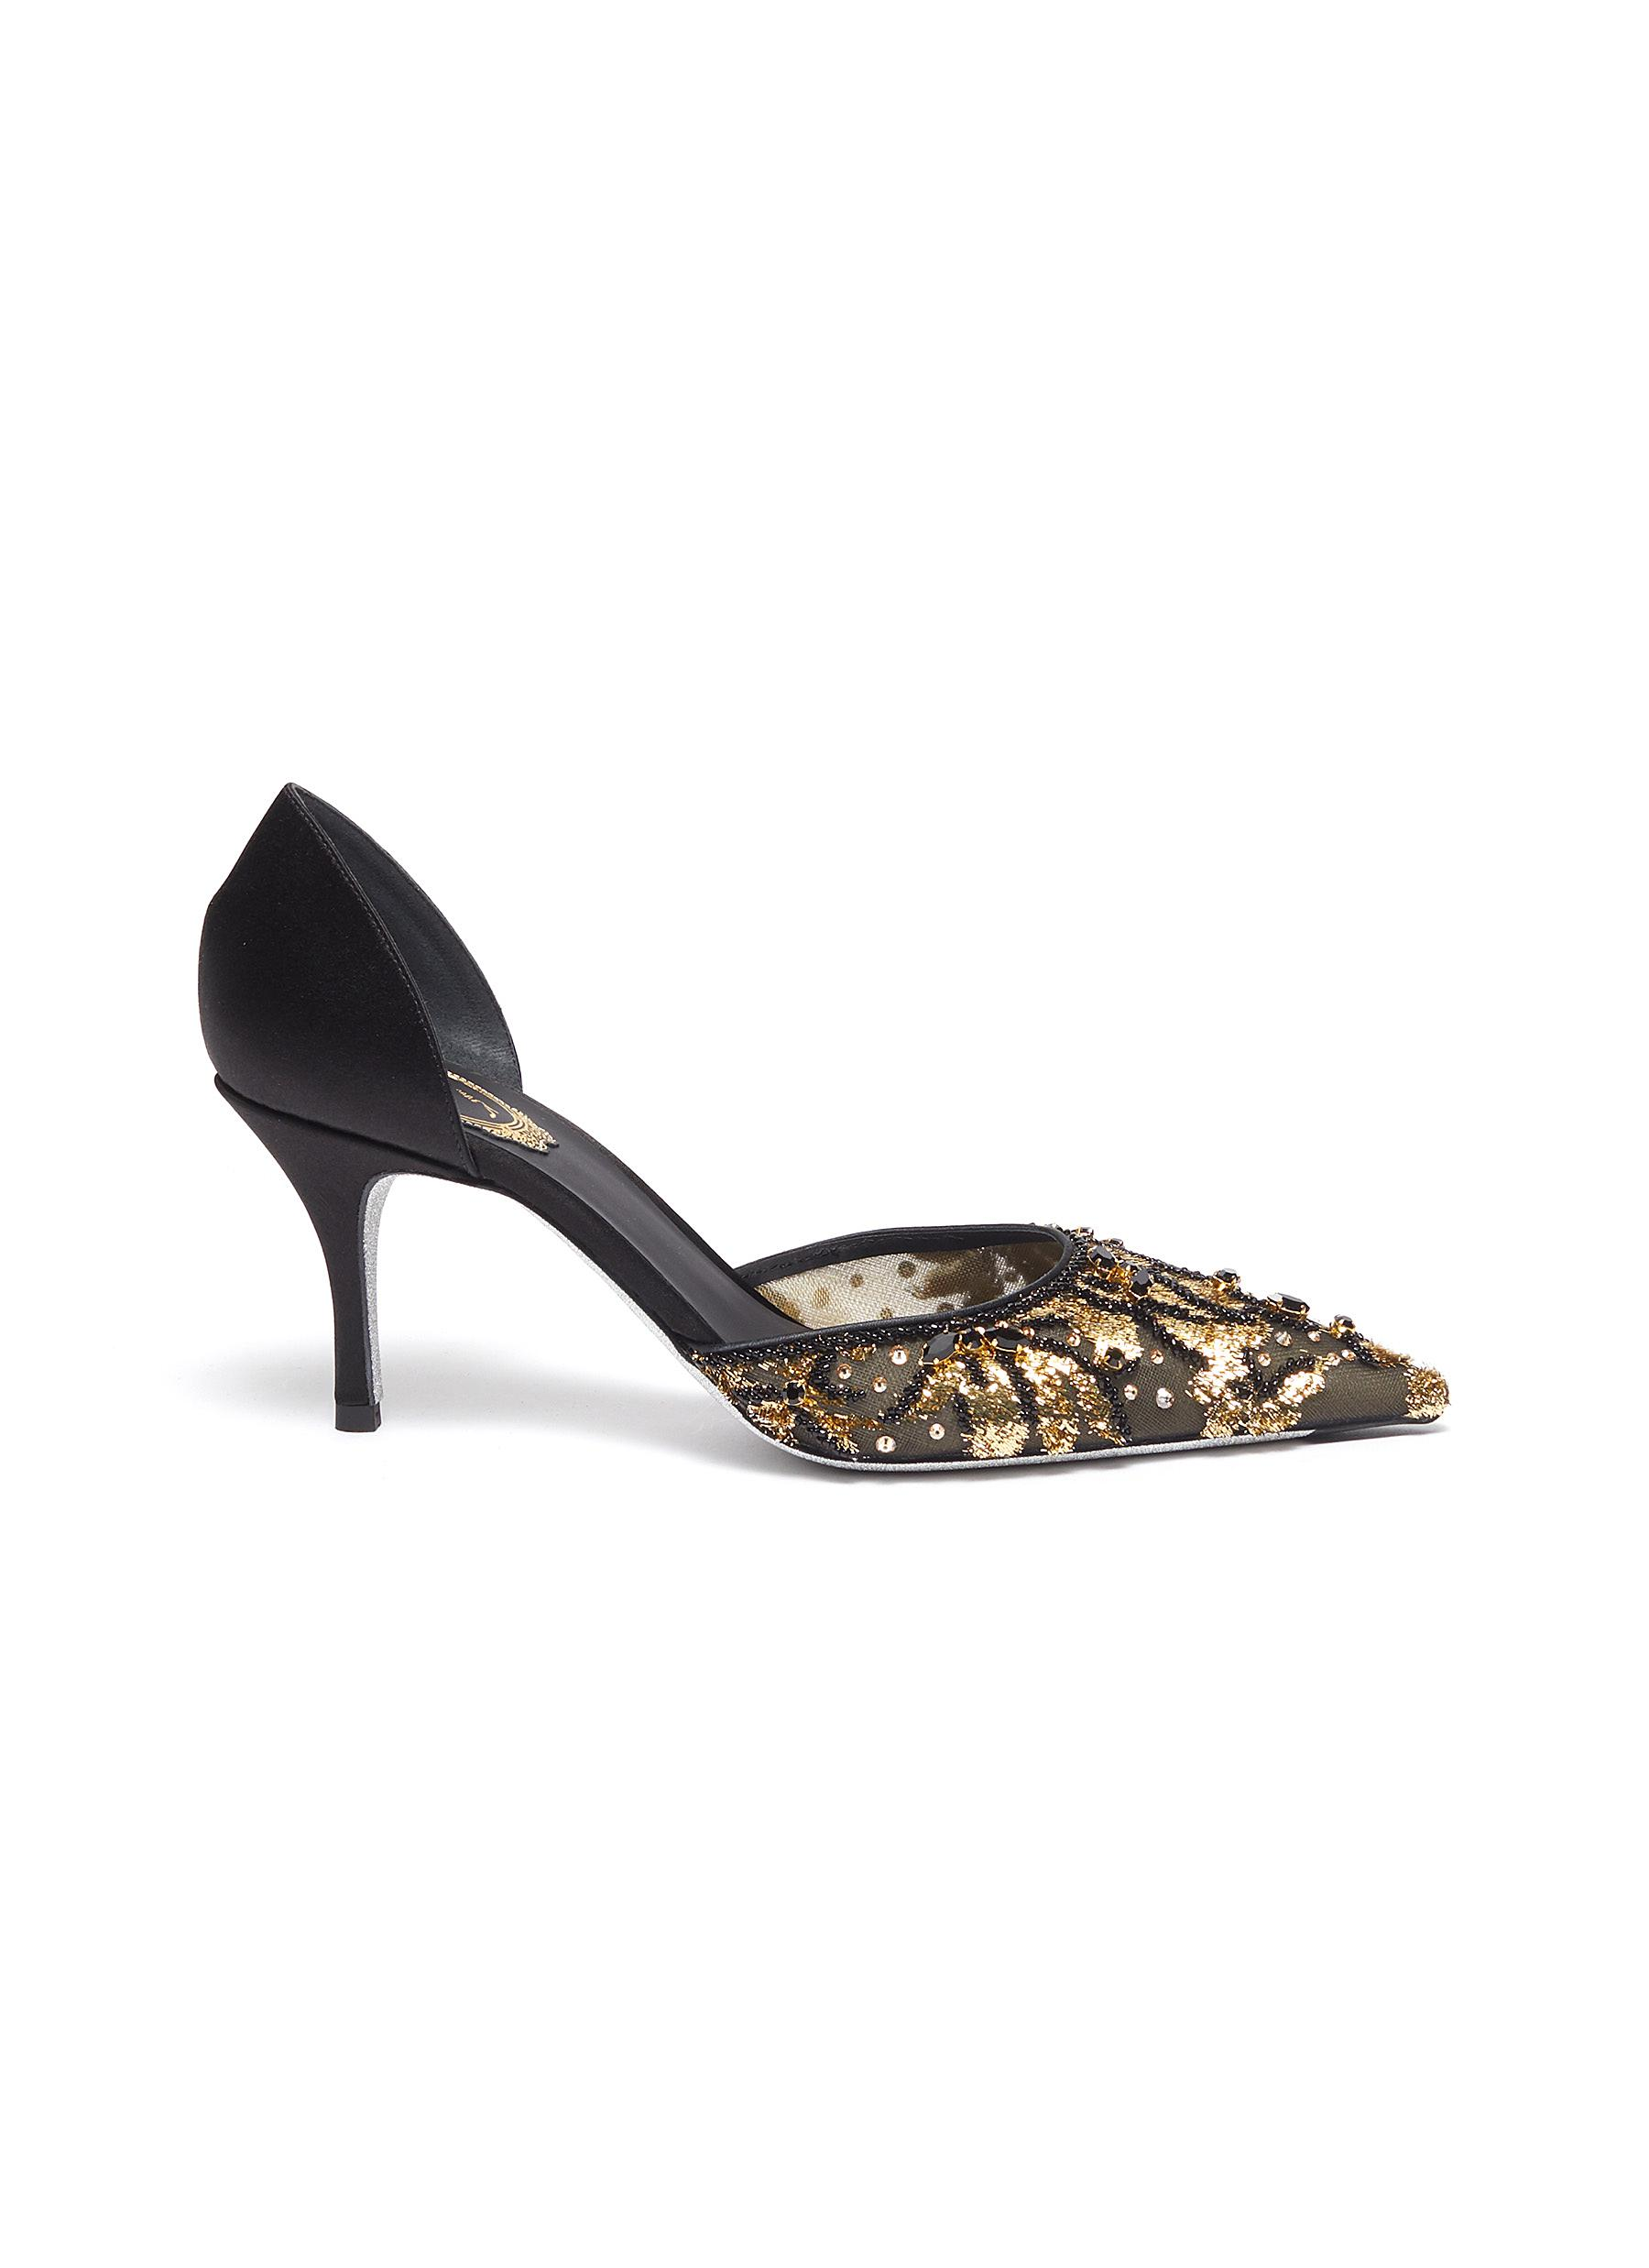 Embellished satin dOrsay pumps by René Caovilla